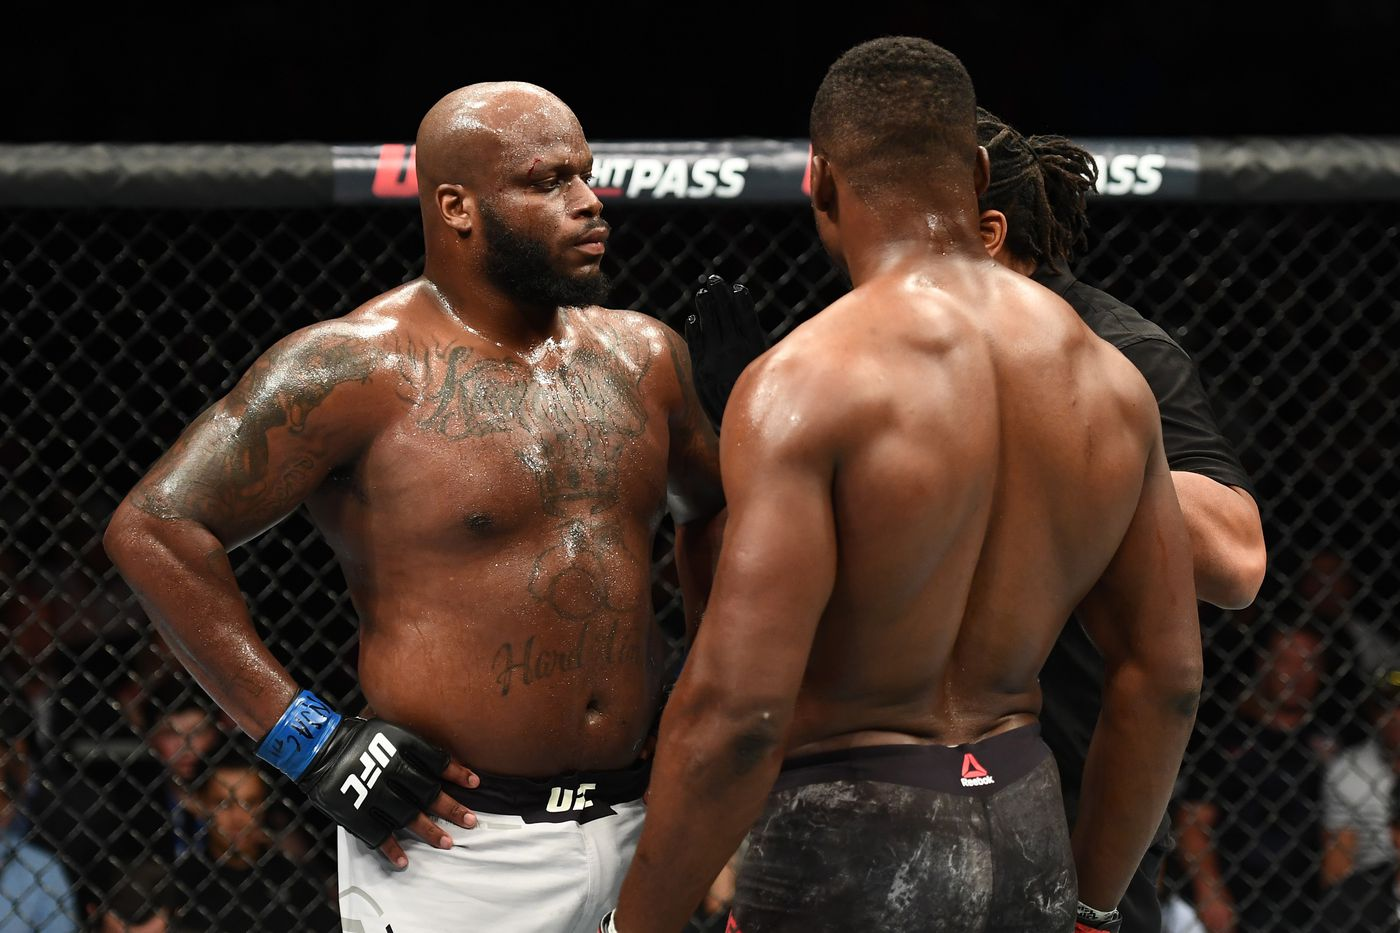 Cormier: Derrick Lewis has more power than Francis Ngannou — 'That's just reality' - MMAmania.com